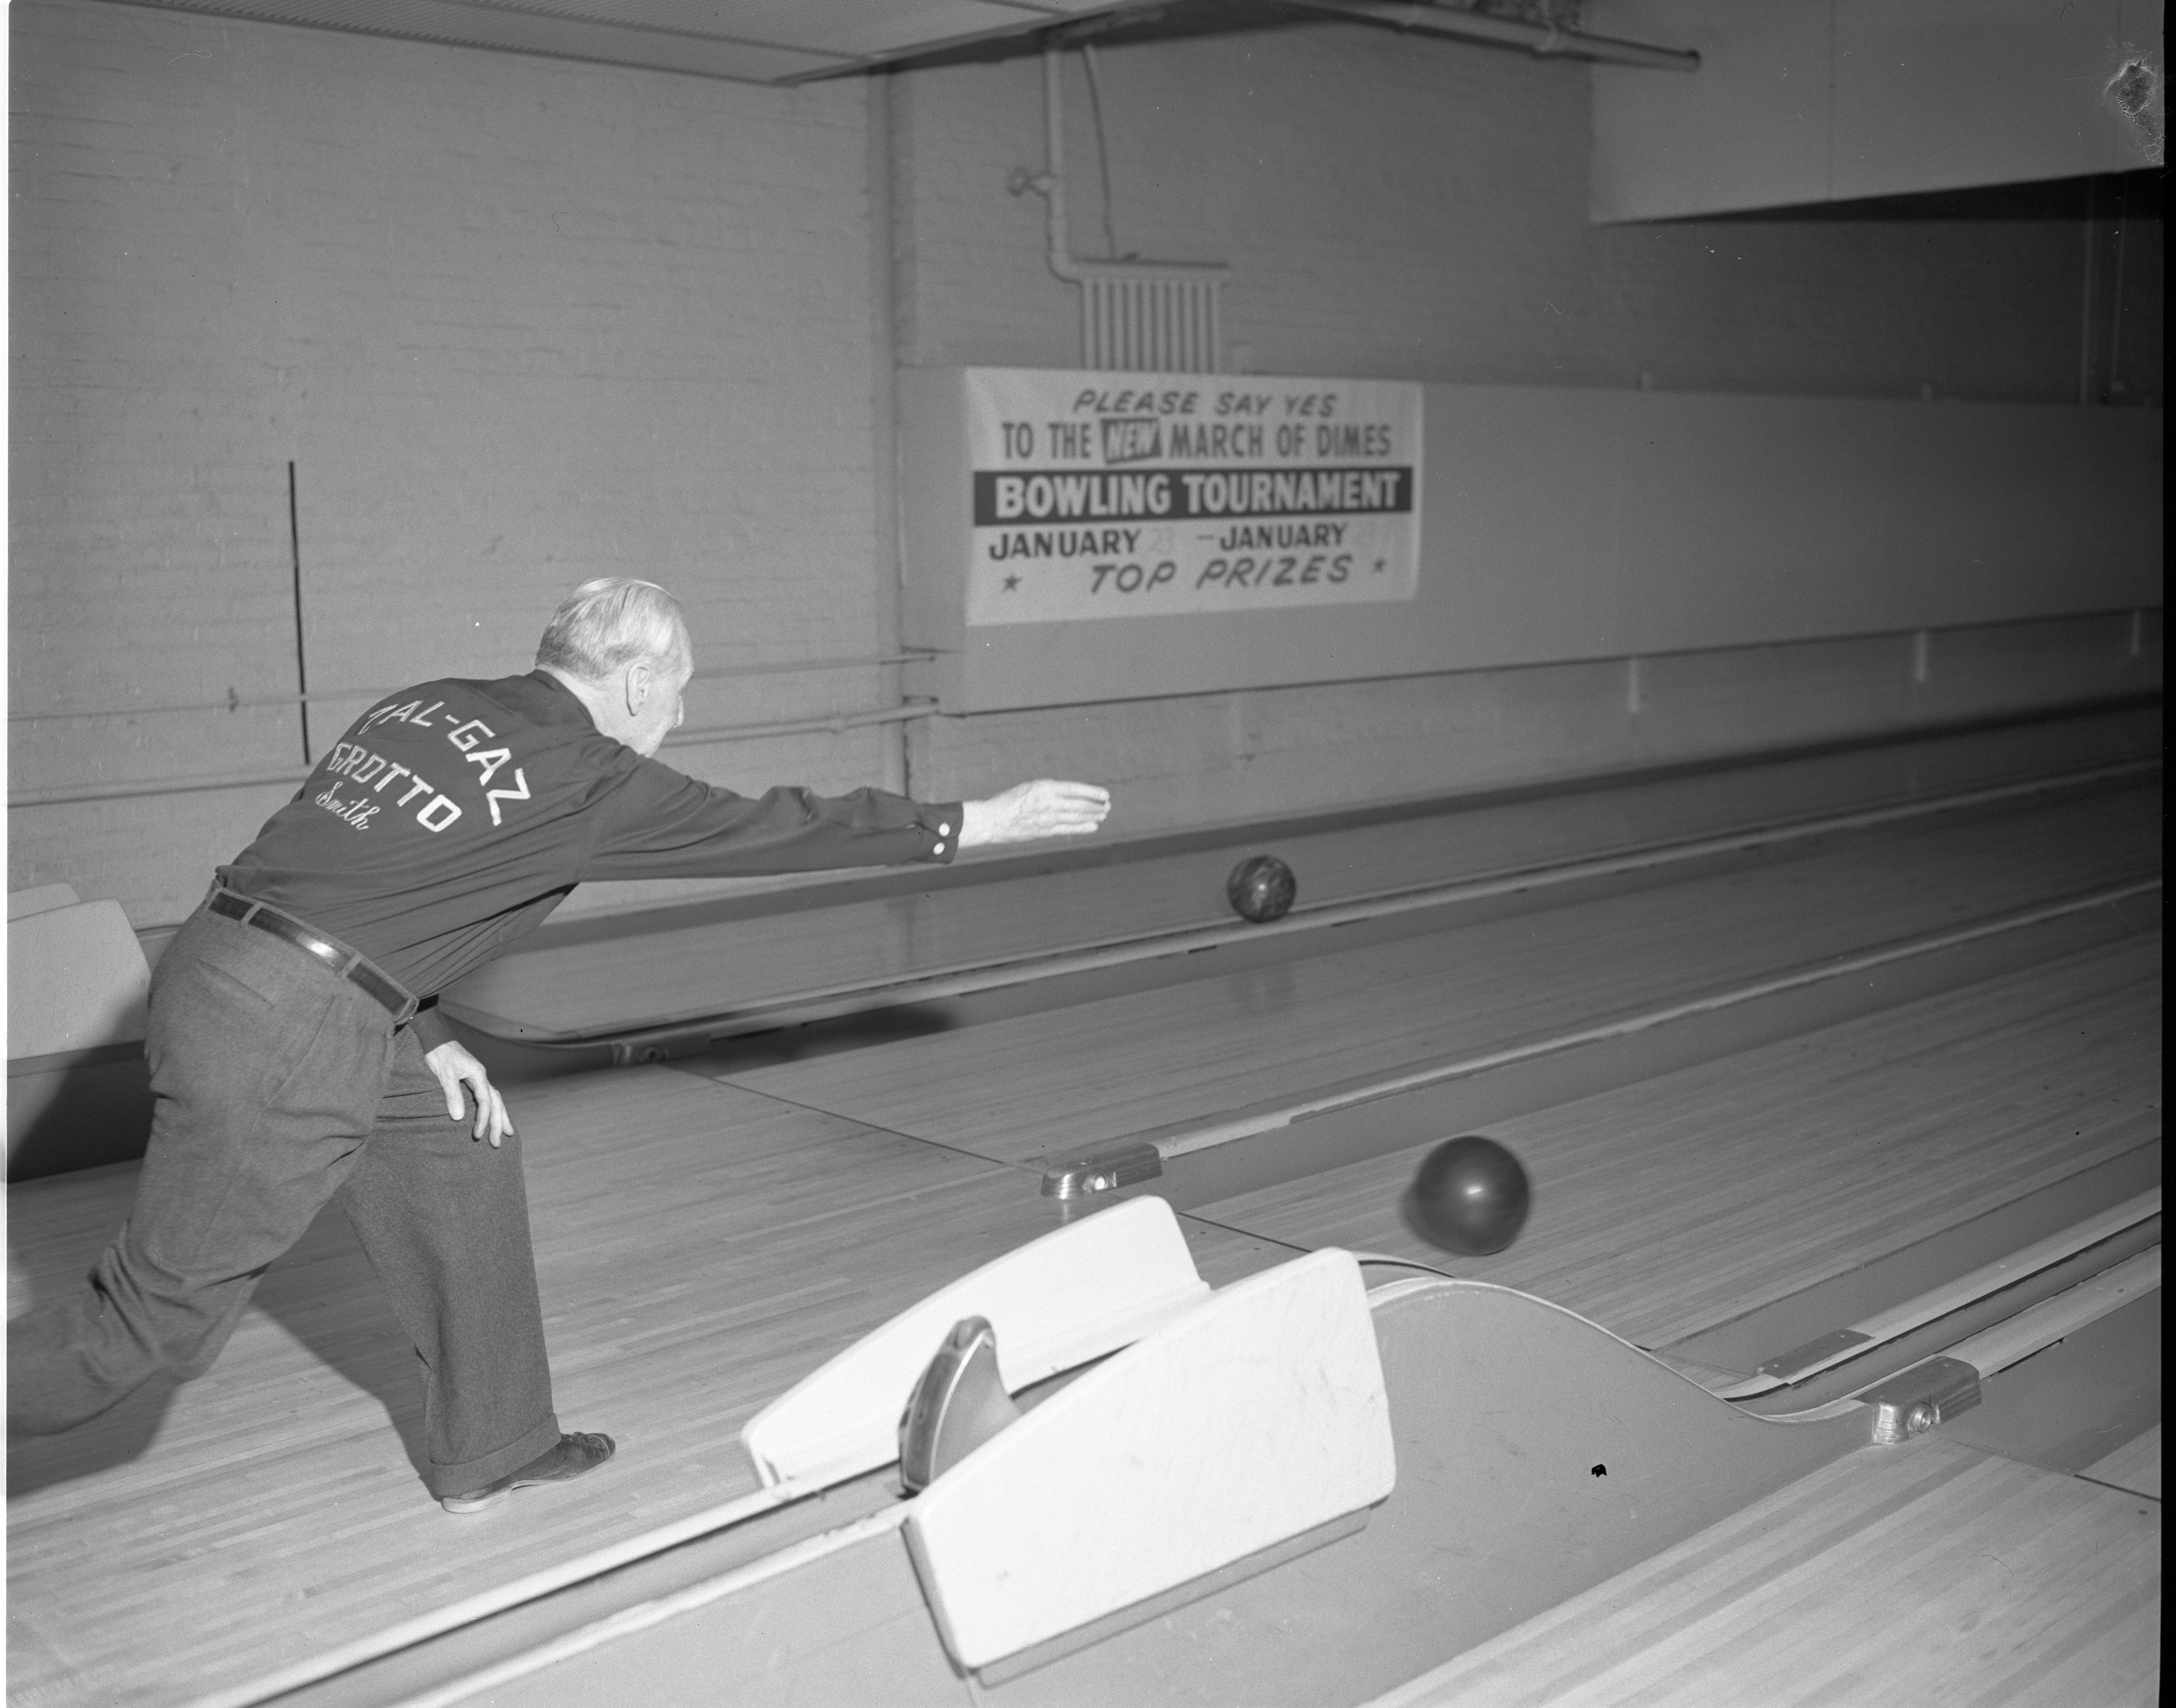 Al Smith, 89-Year-Old Bowler, January 1961 image